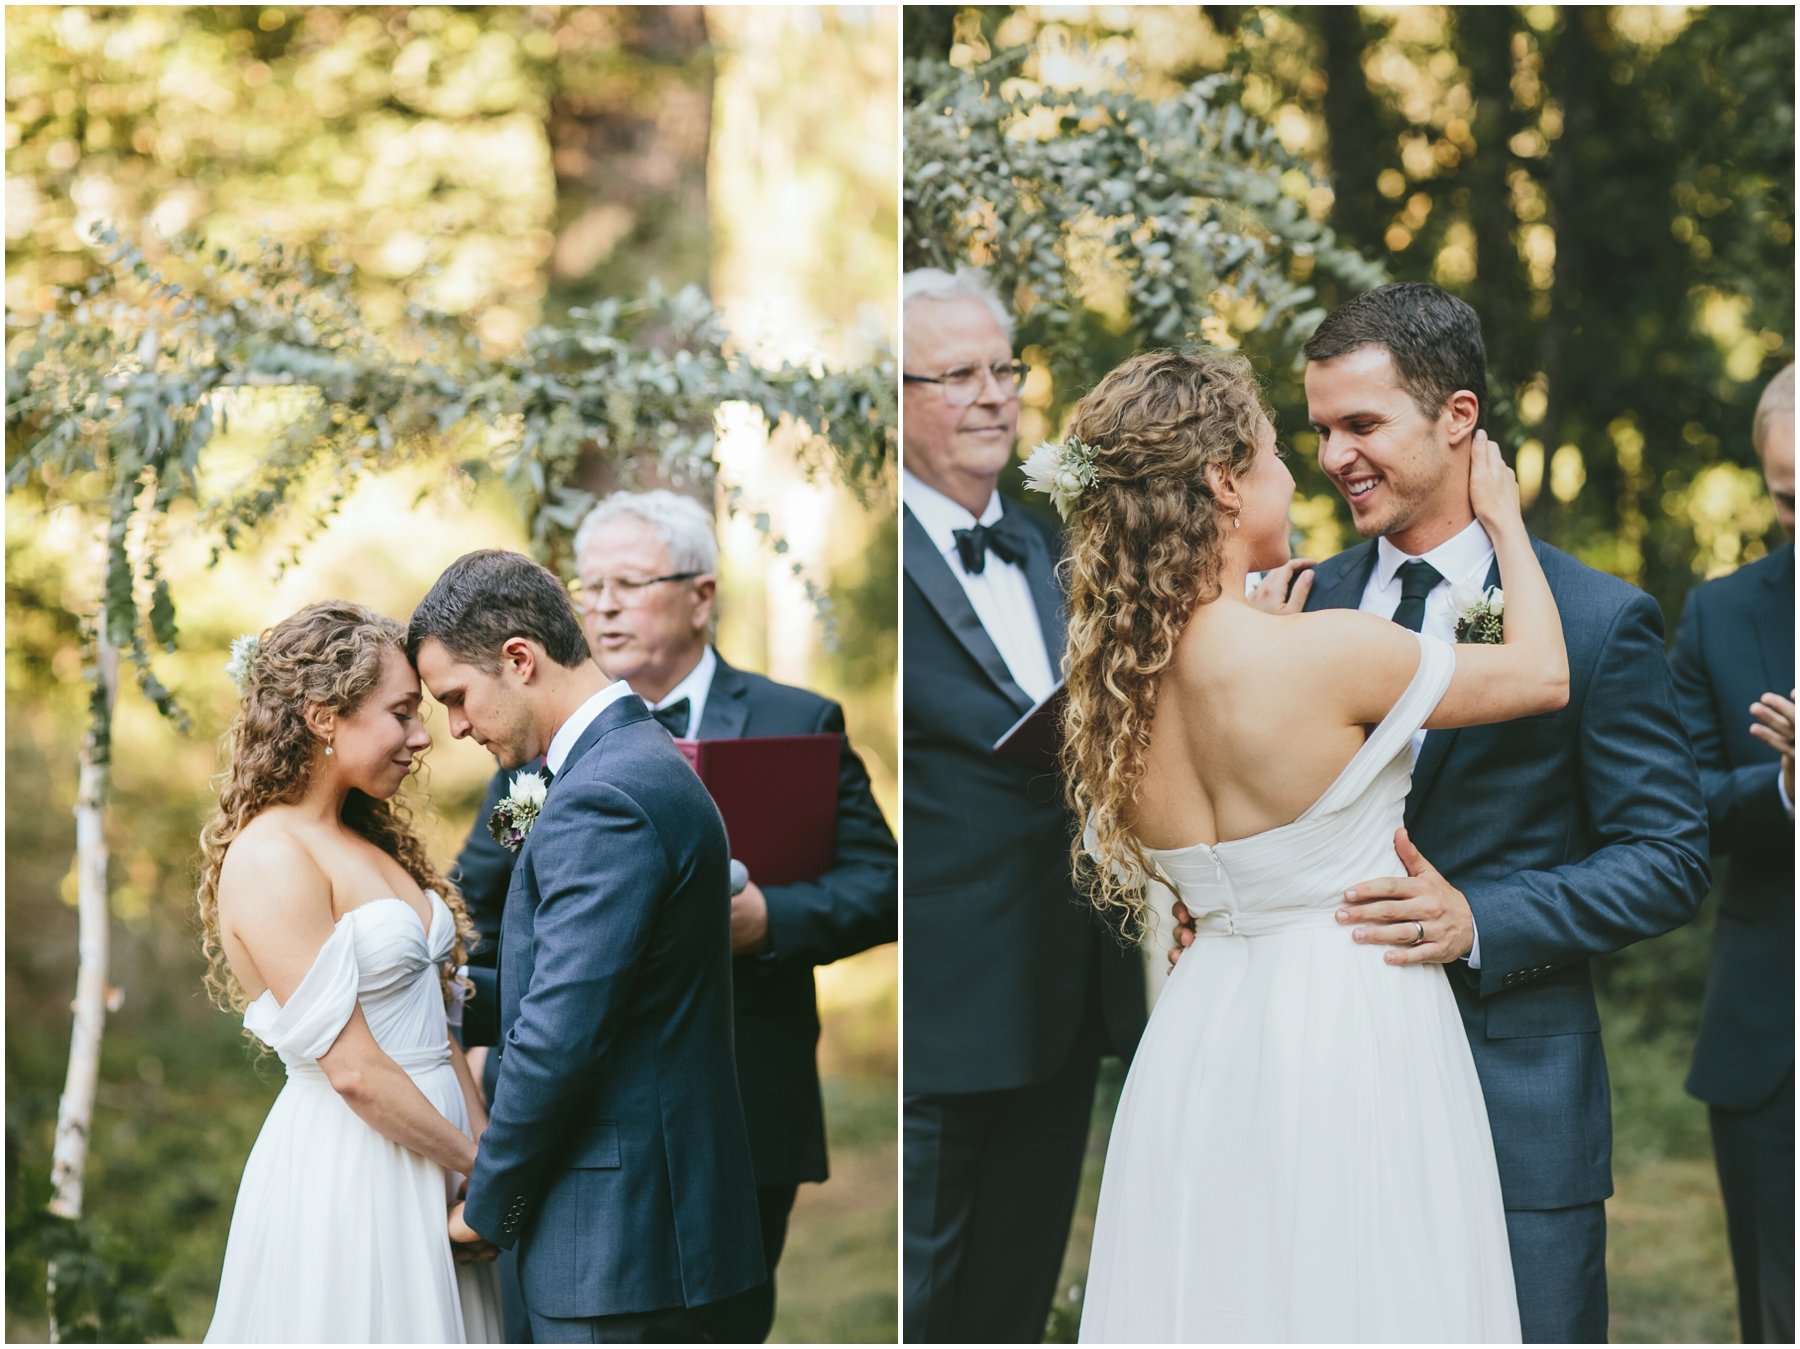 Emily+Paul-WEDDING_KellyBoitanoPhotography_0092